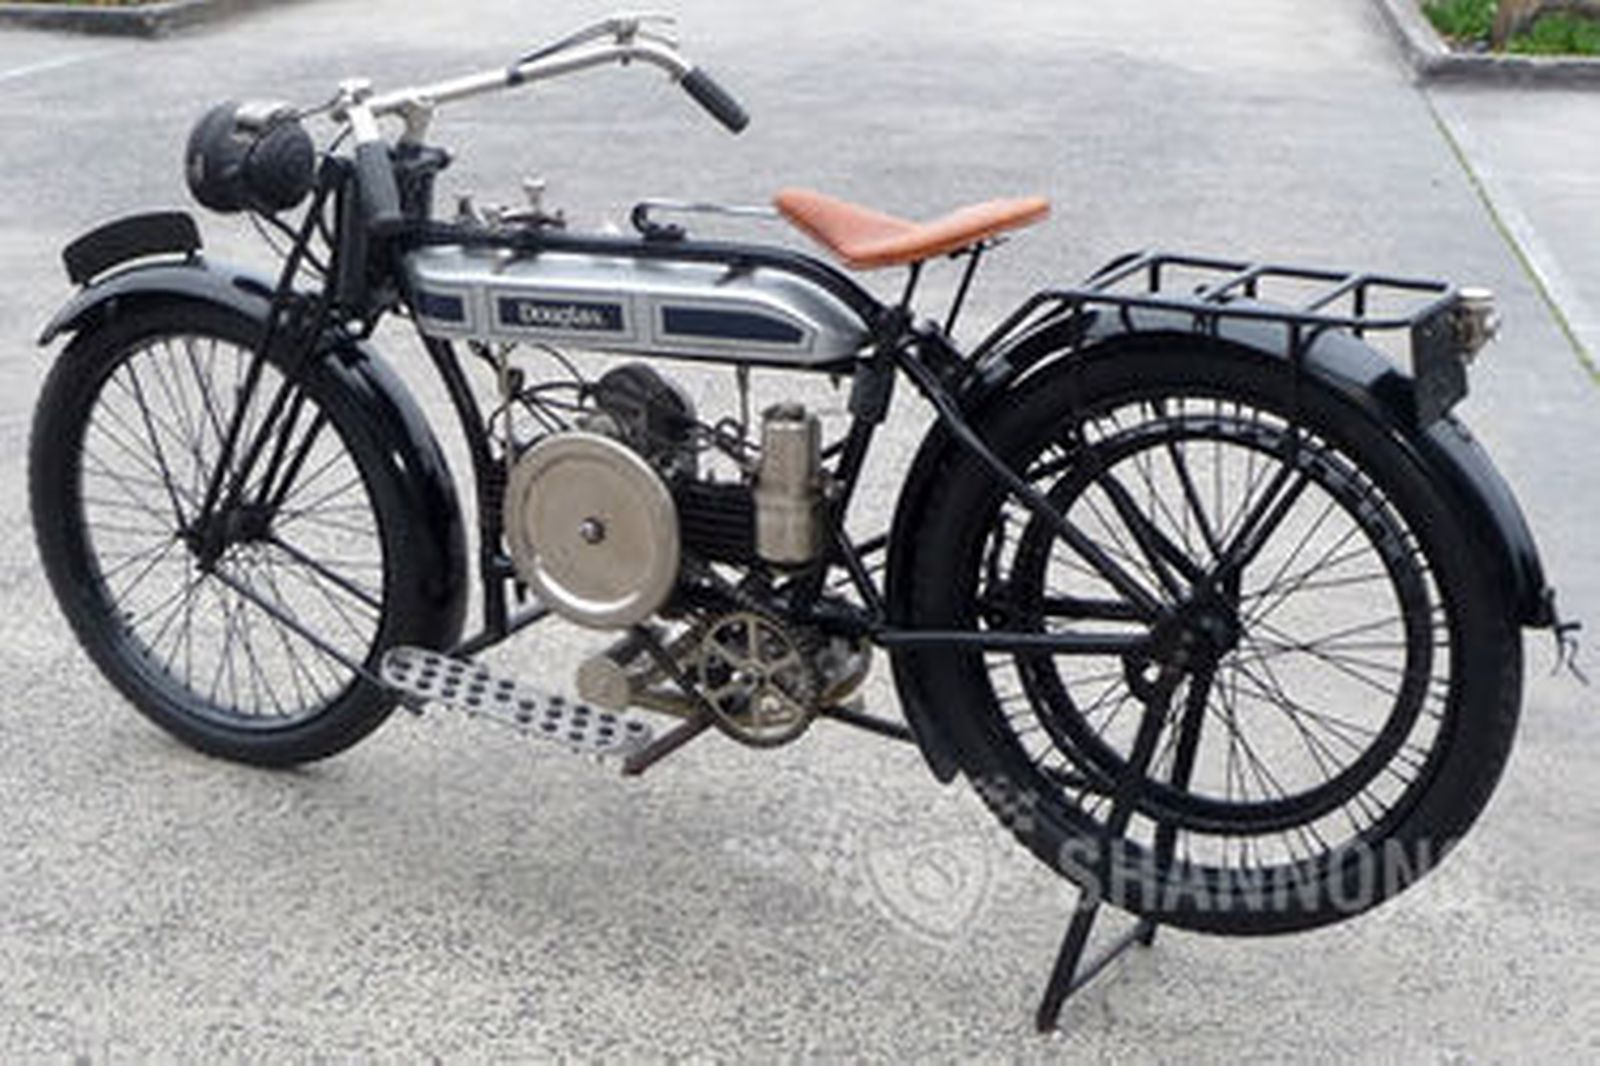 C Douglas Cc Belt Drive Motorcycle on Horizontally Opposed 4 Cylinder Engine